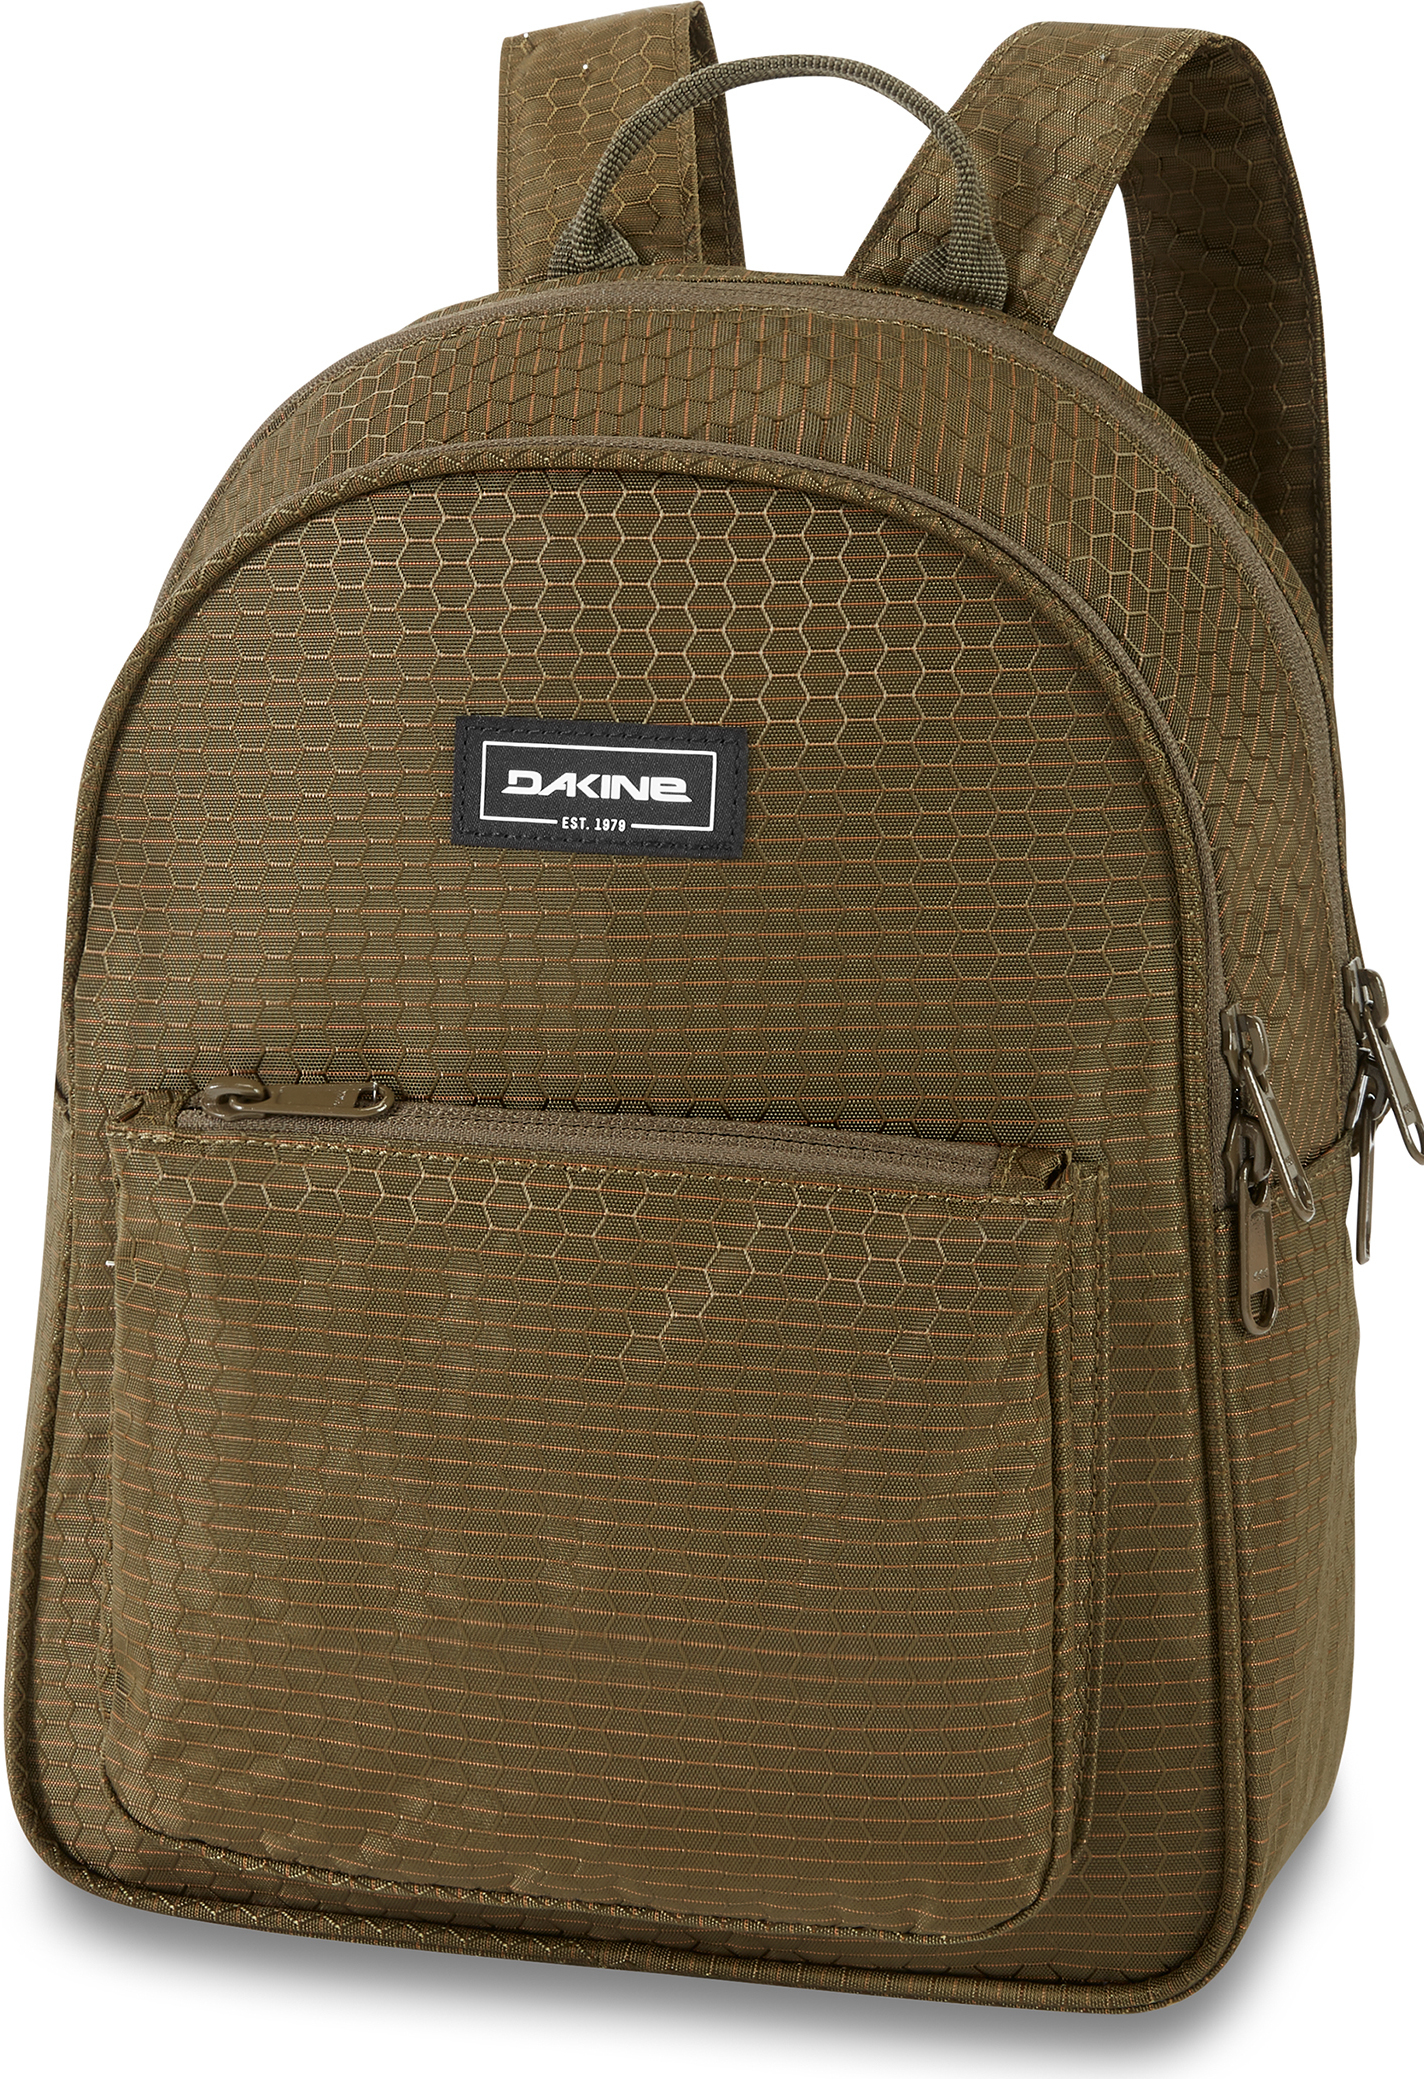 Dakine Essentials Pack Mini 7L rugzak